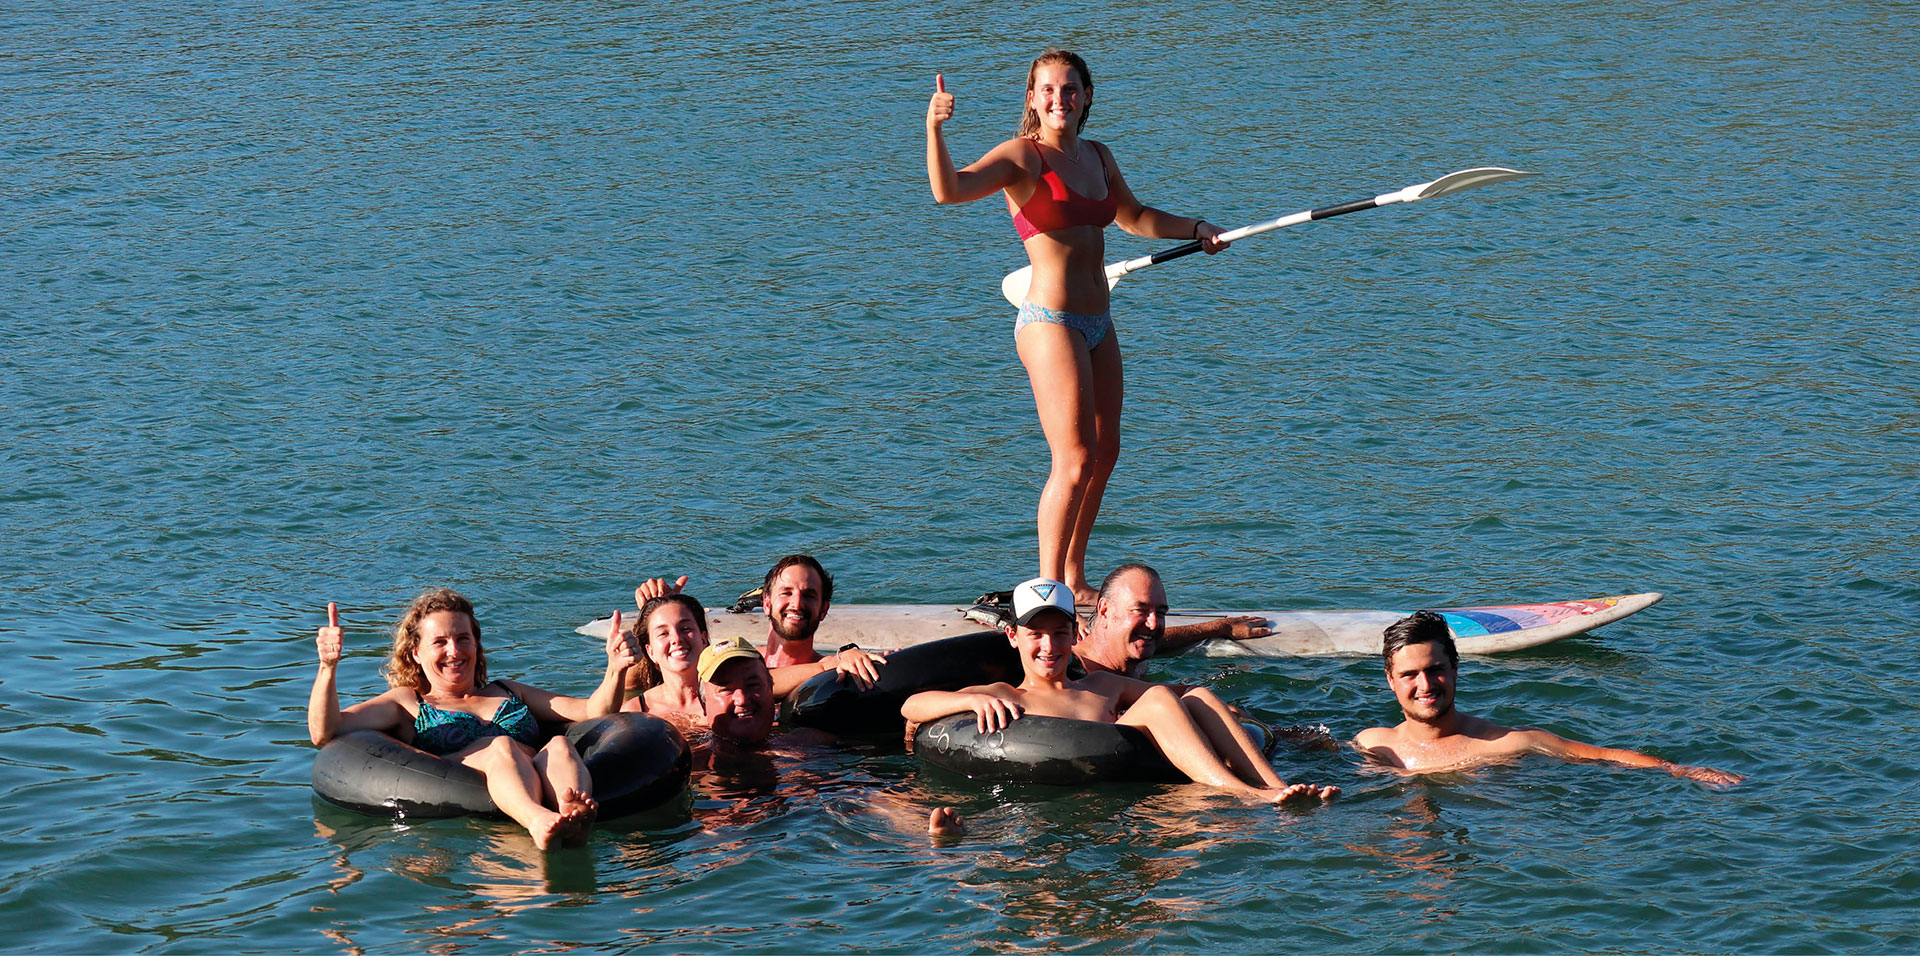 Group of people in water